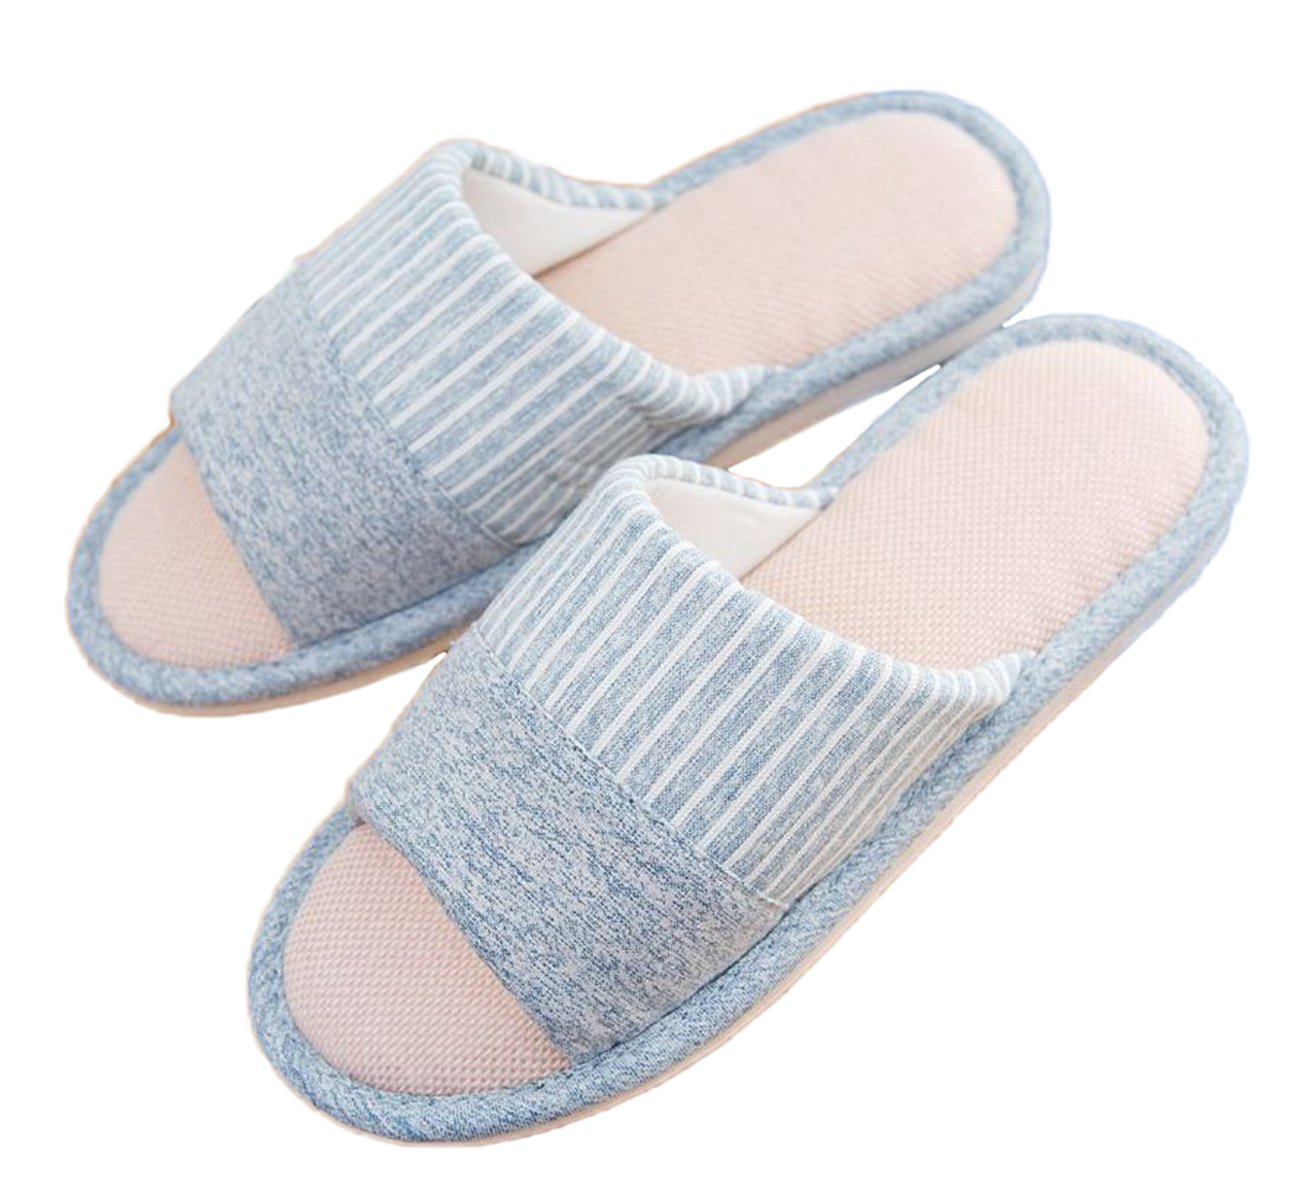 xsby Womens Open Toe Cotton Slippers, Comfortable Slippers with Arch Support Bedroom Shoes Blue-C 36-37